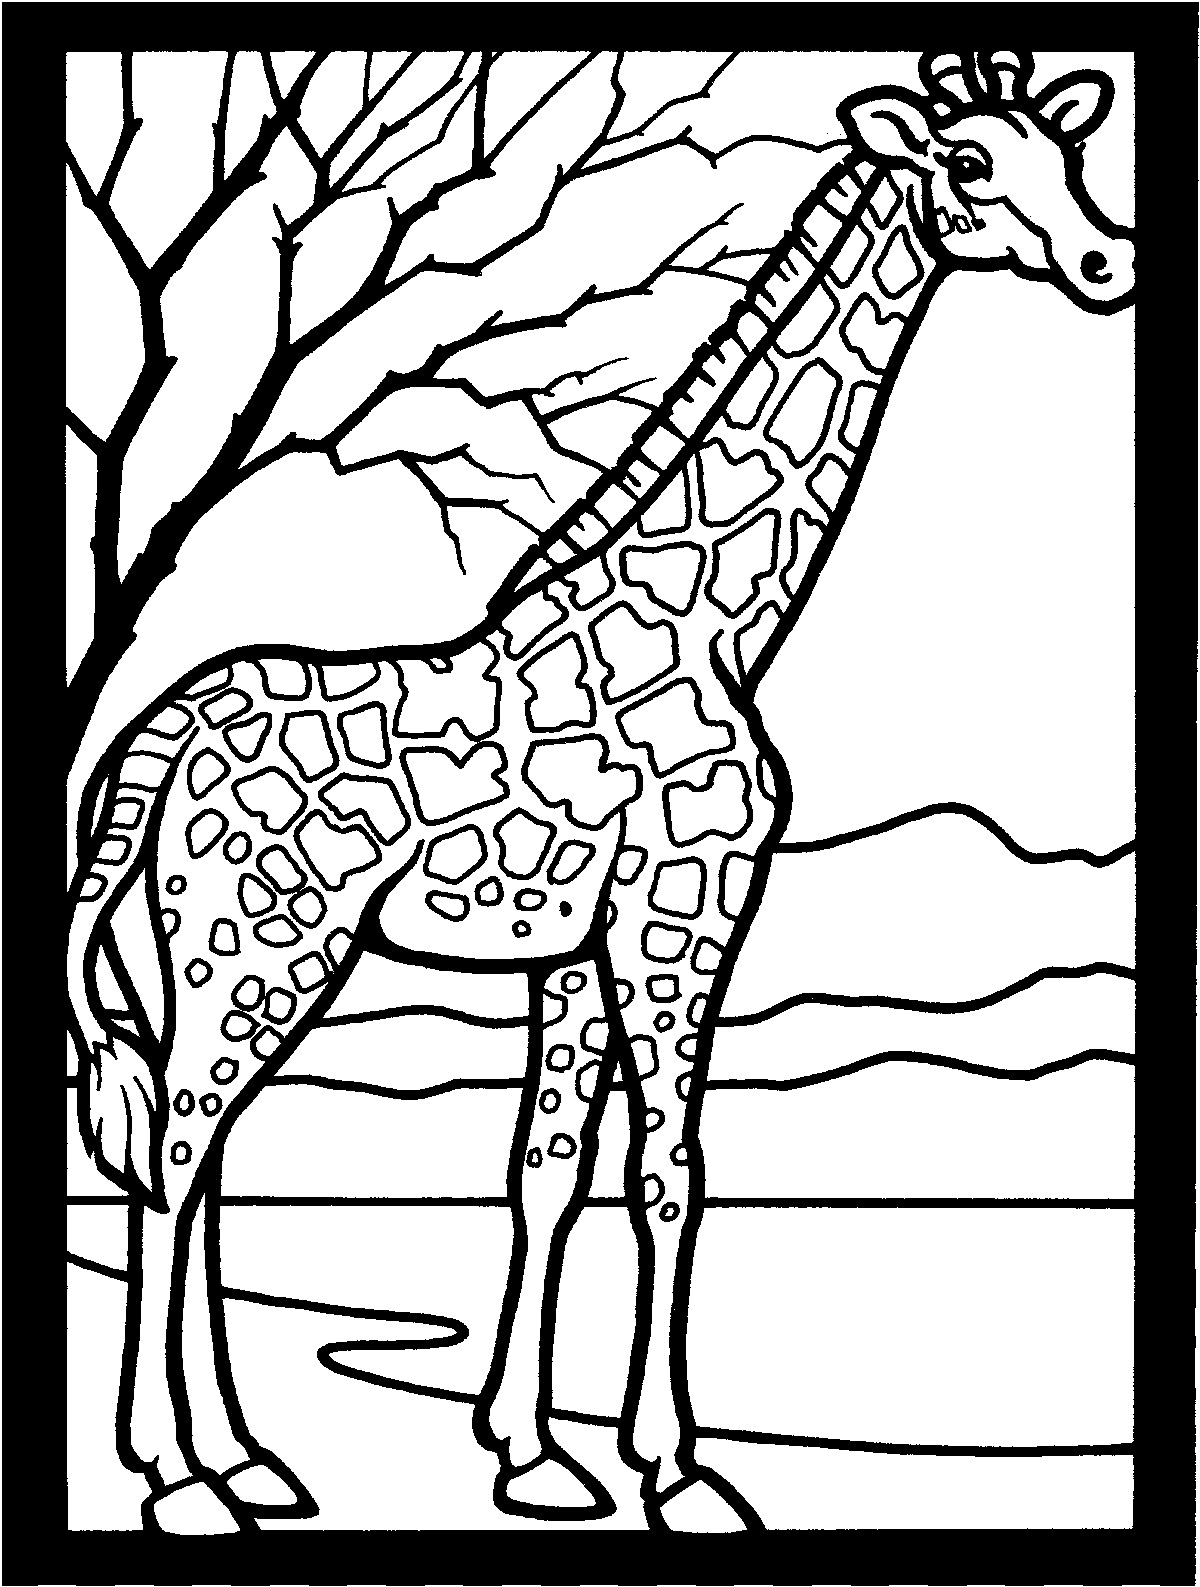 giraffe coloring page for kids - Colour In For Kids